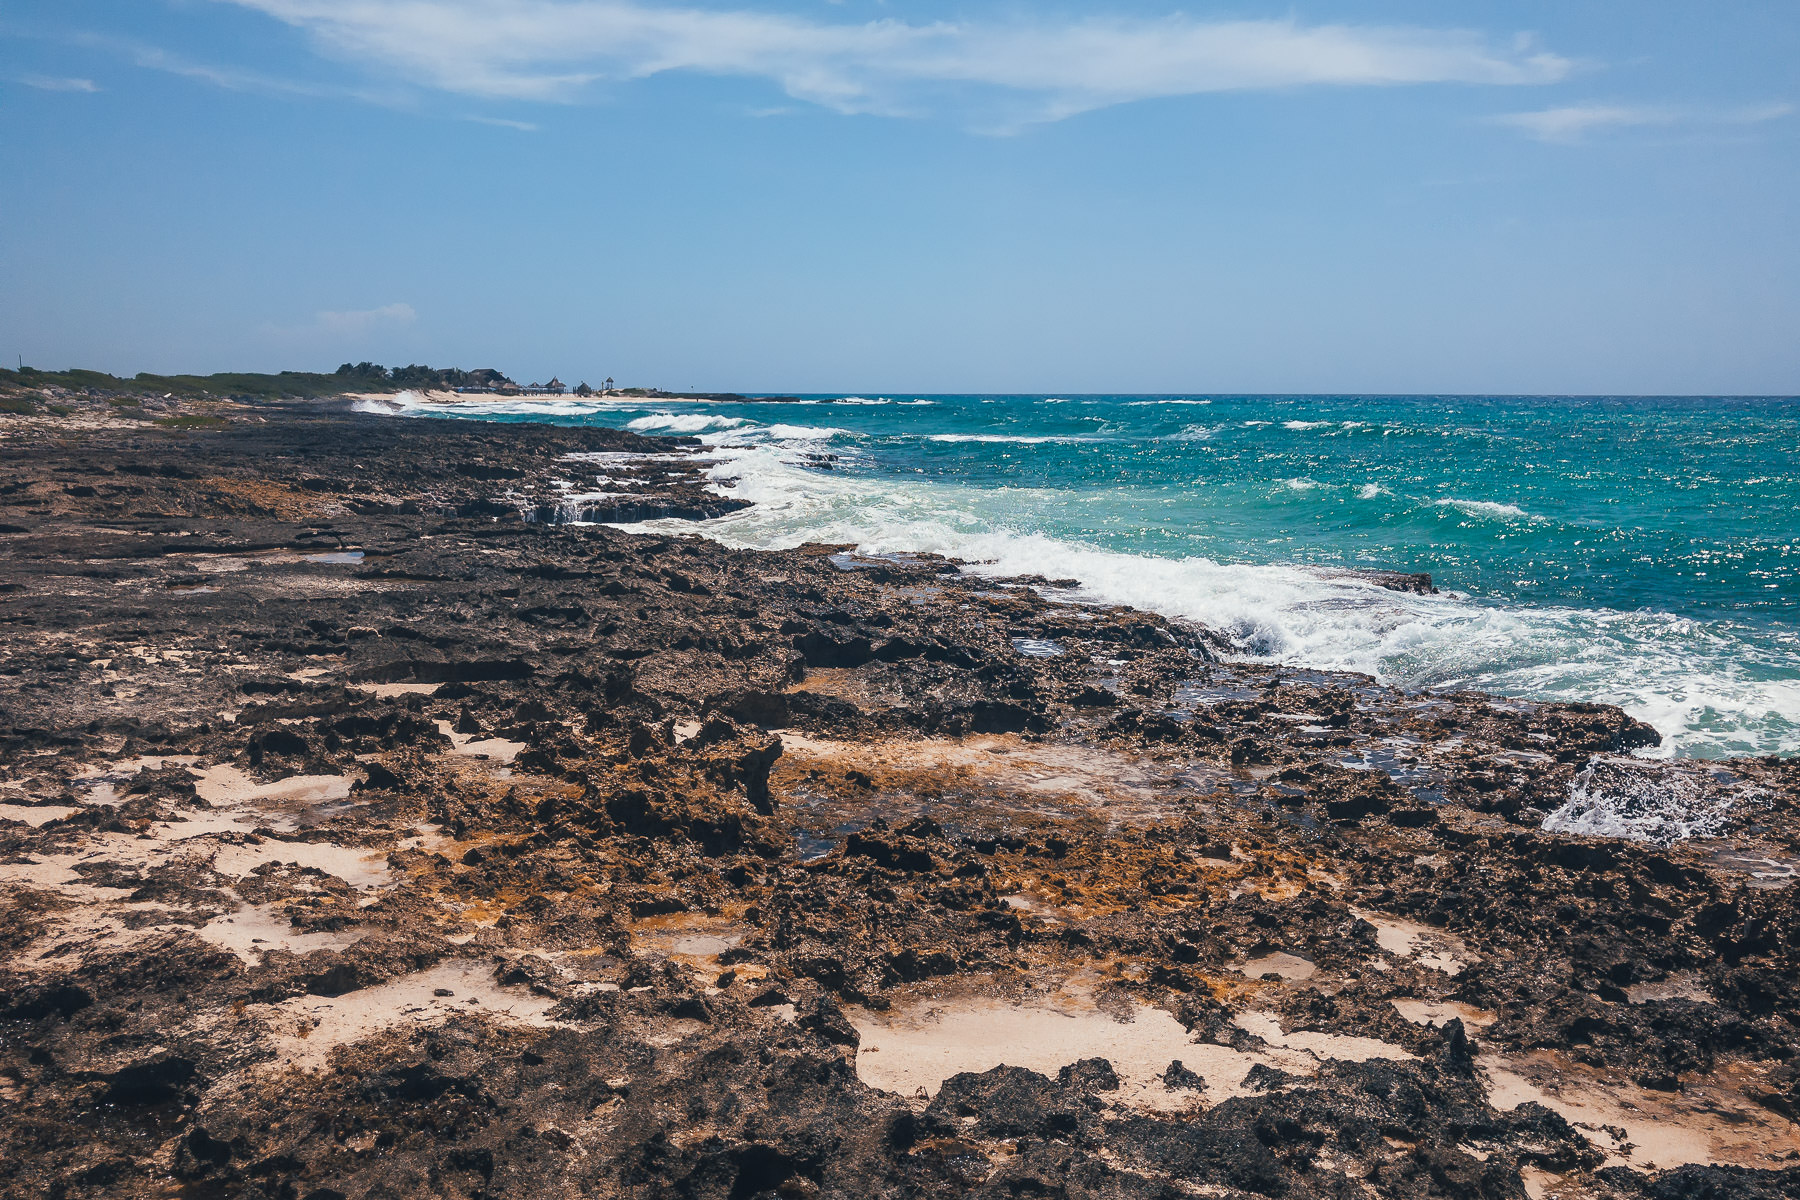 The rocky beach of Cozumel, Mexico's eastern shore.